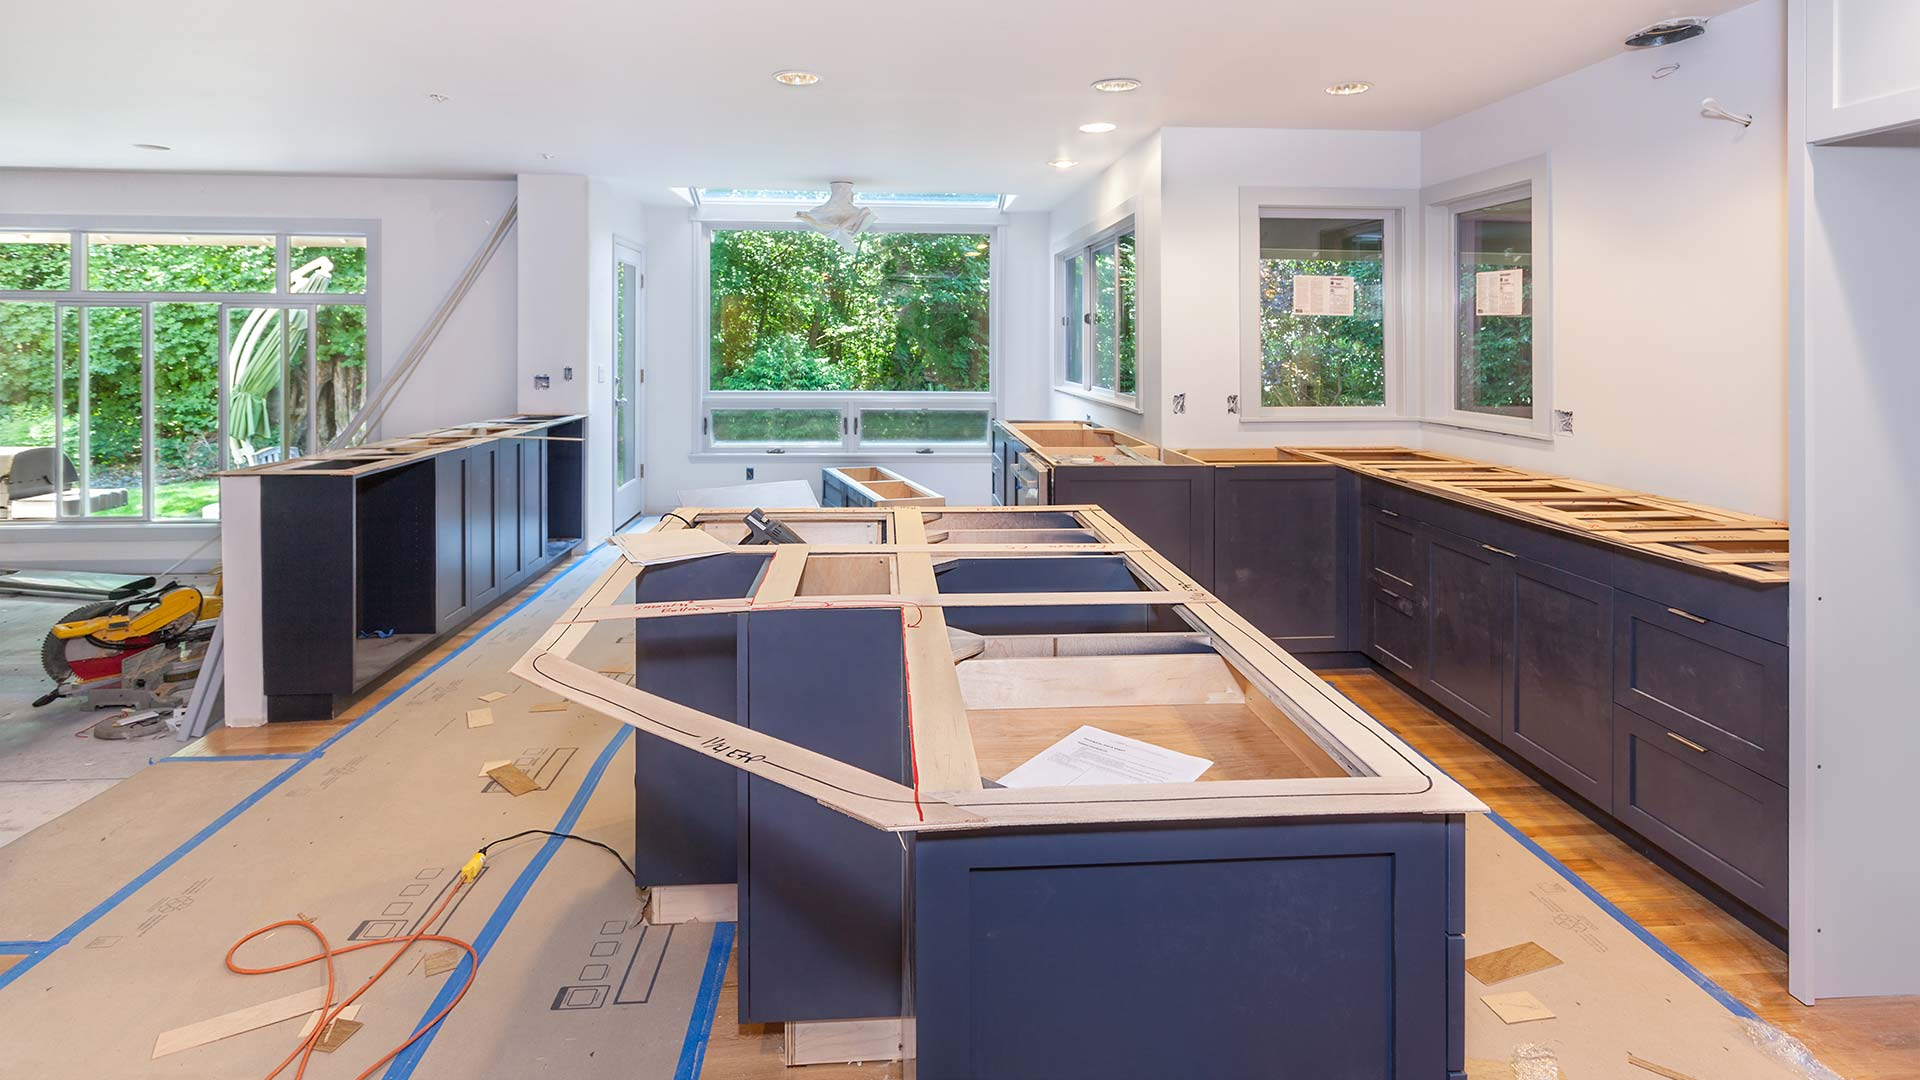 How a DIY Kitchen Remodel Can Go Horribly Wrong